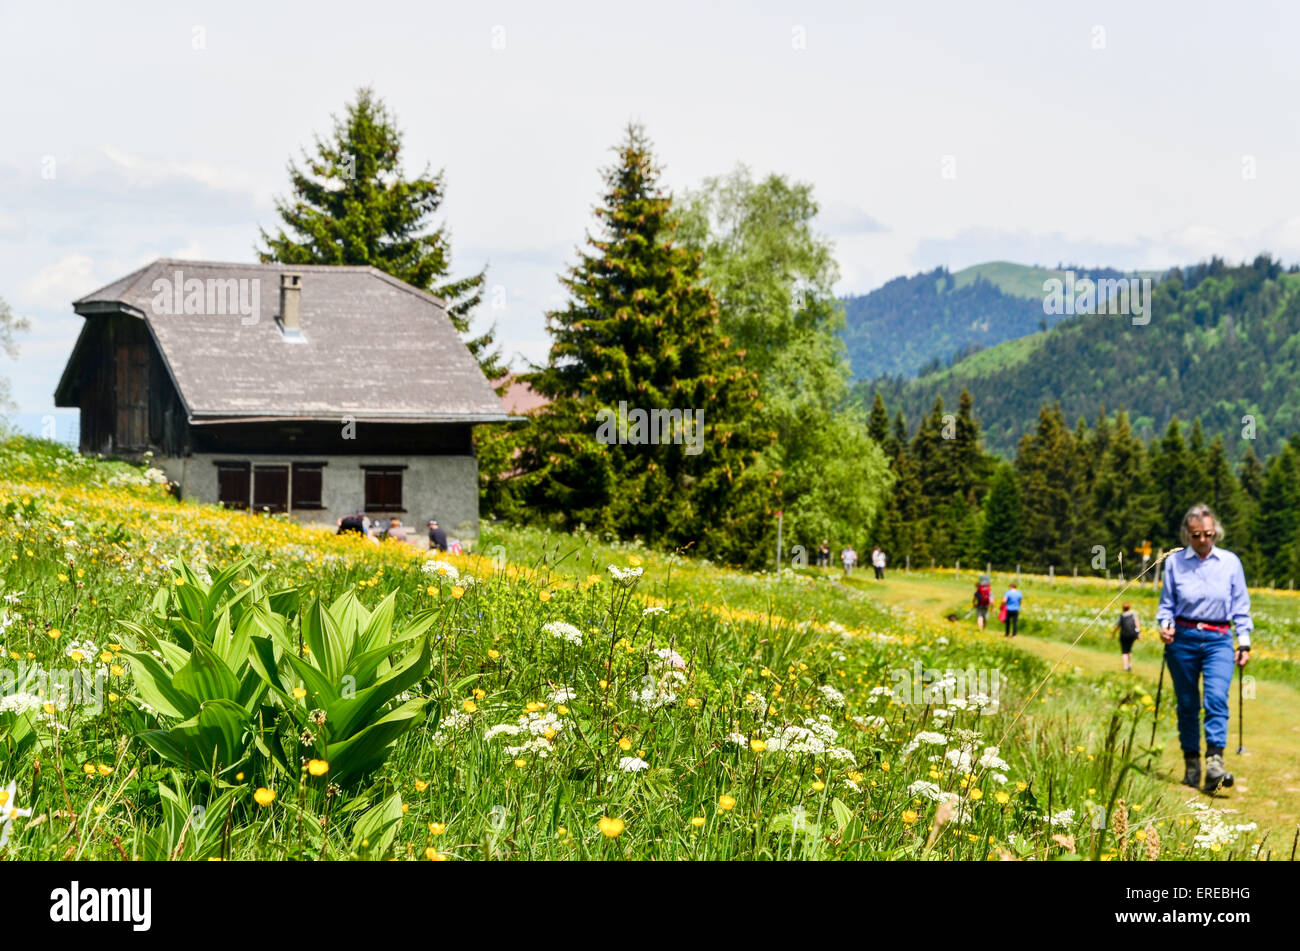 Hiker passing by a chalet house in the mountains of Switzerland - Stock Image